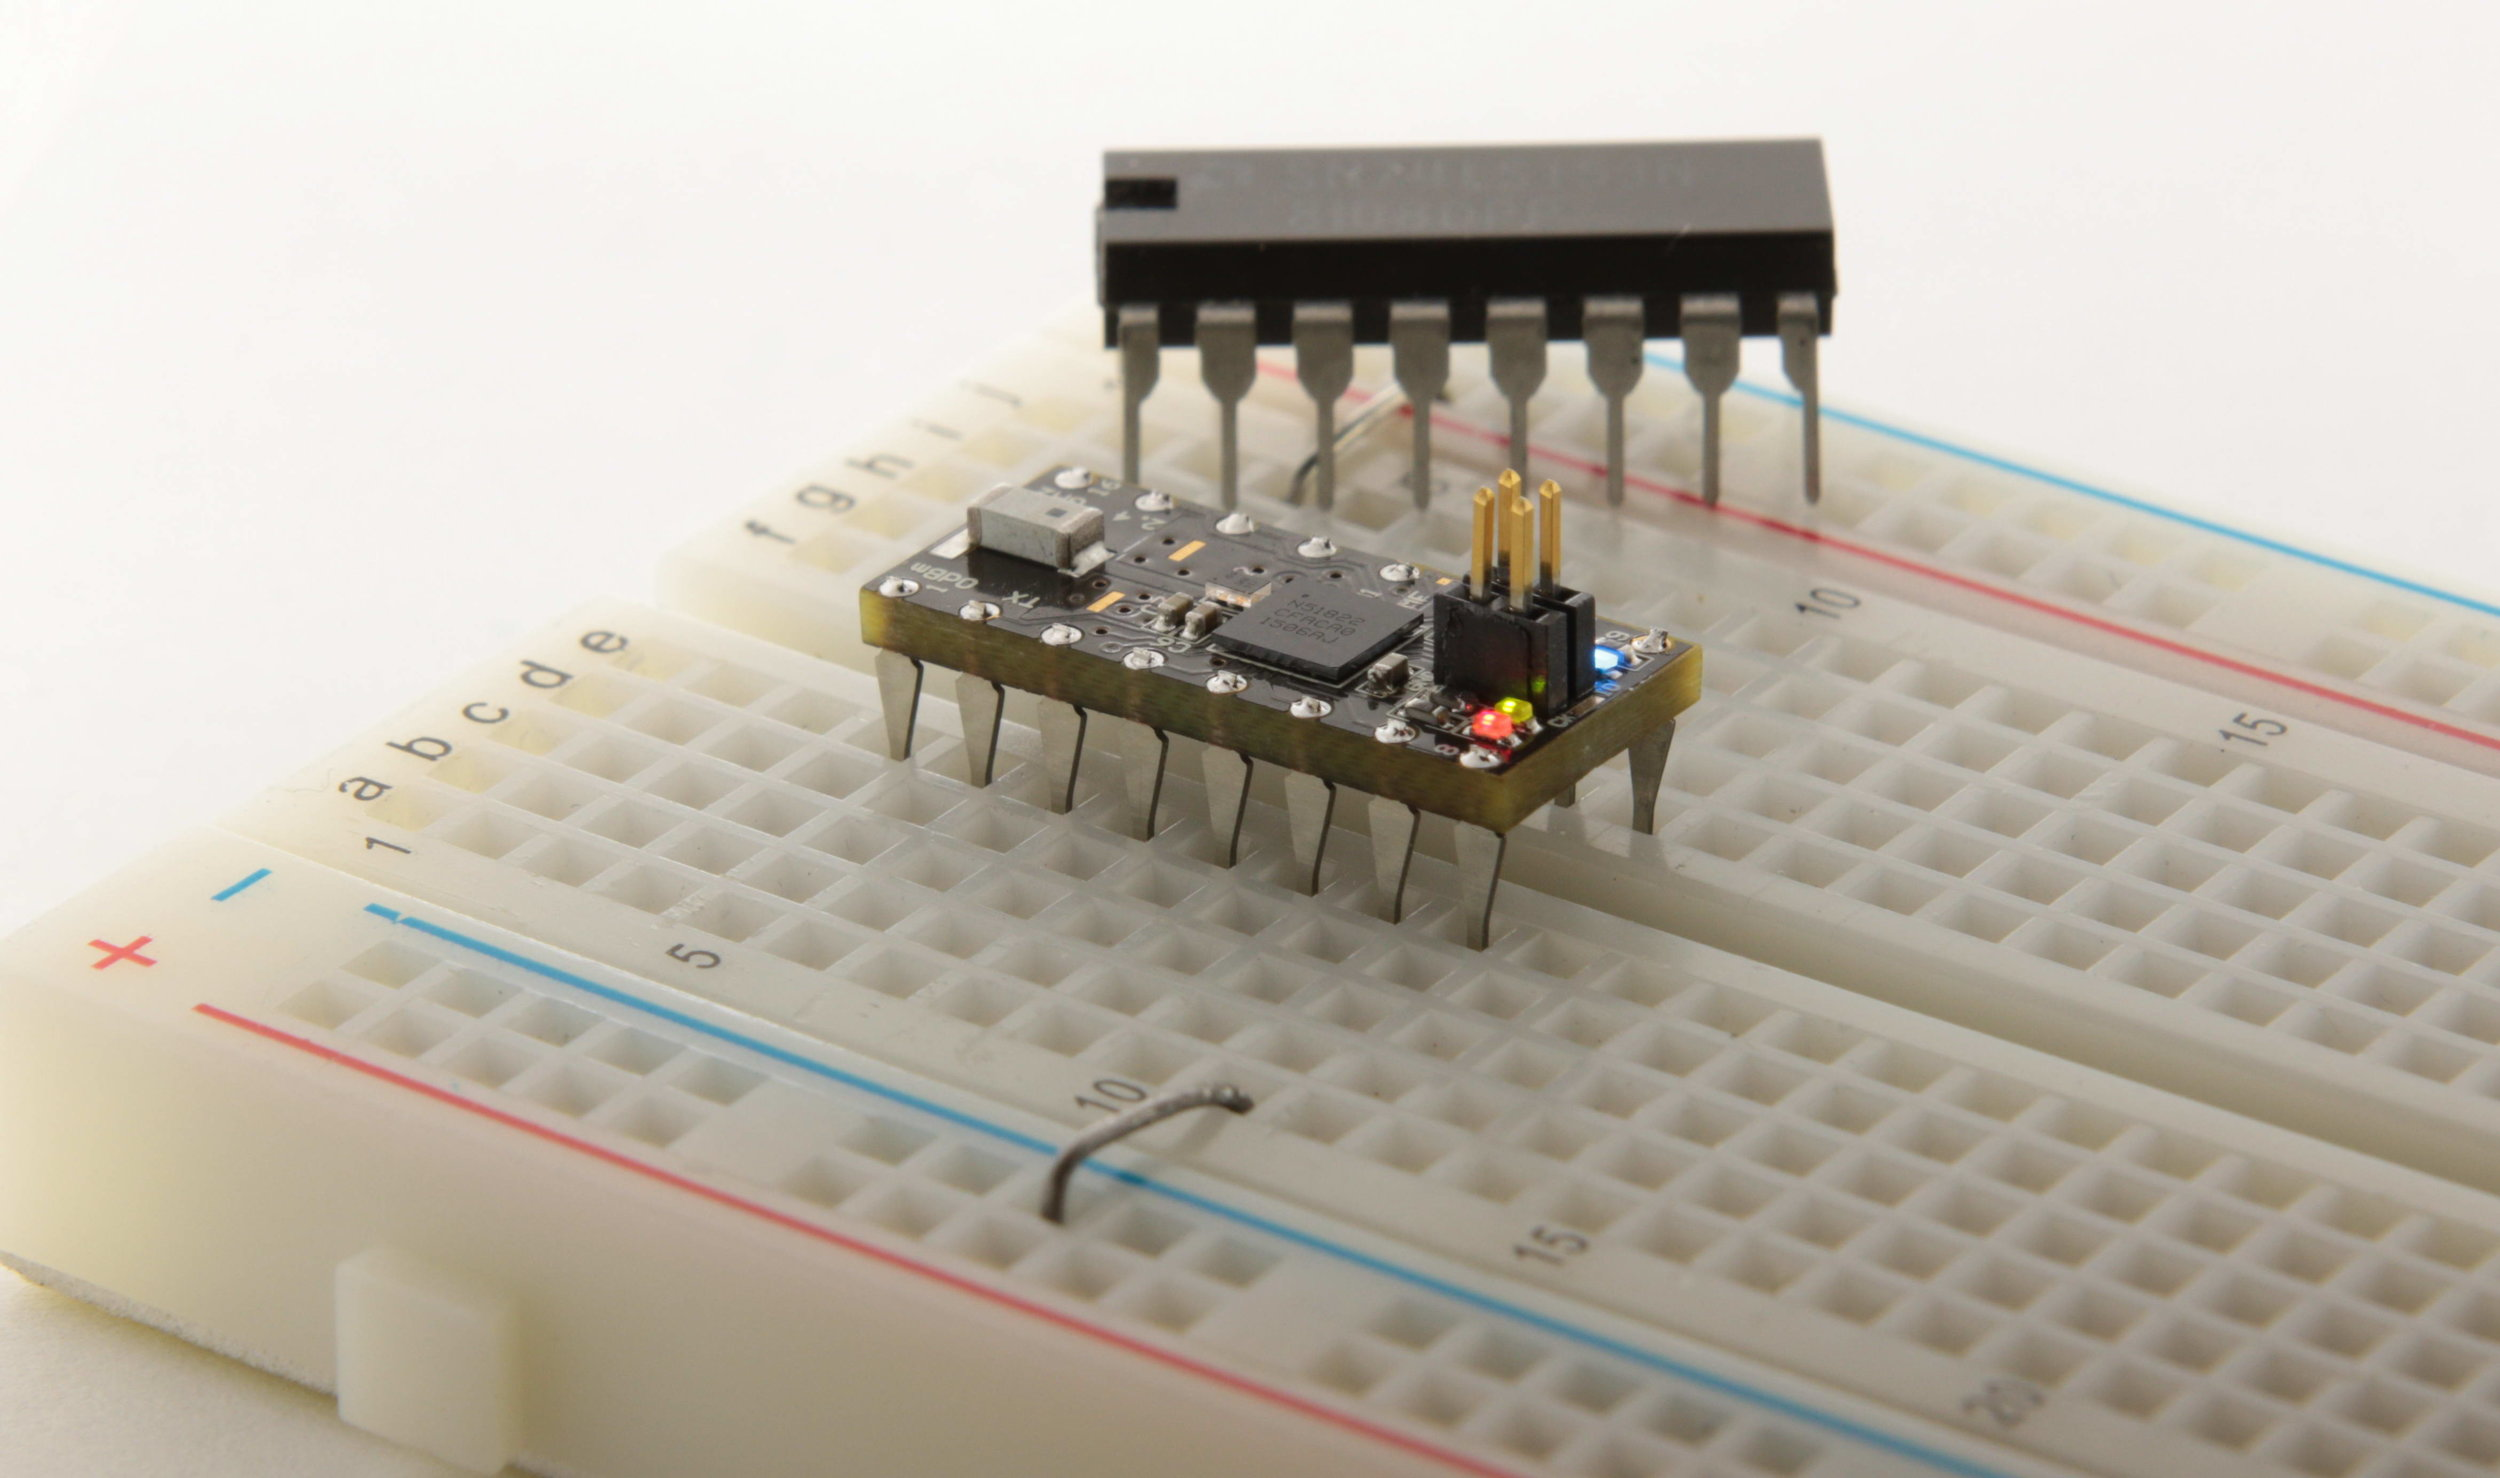 OSHChip on a breadboard